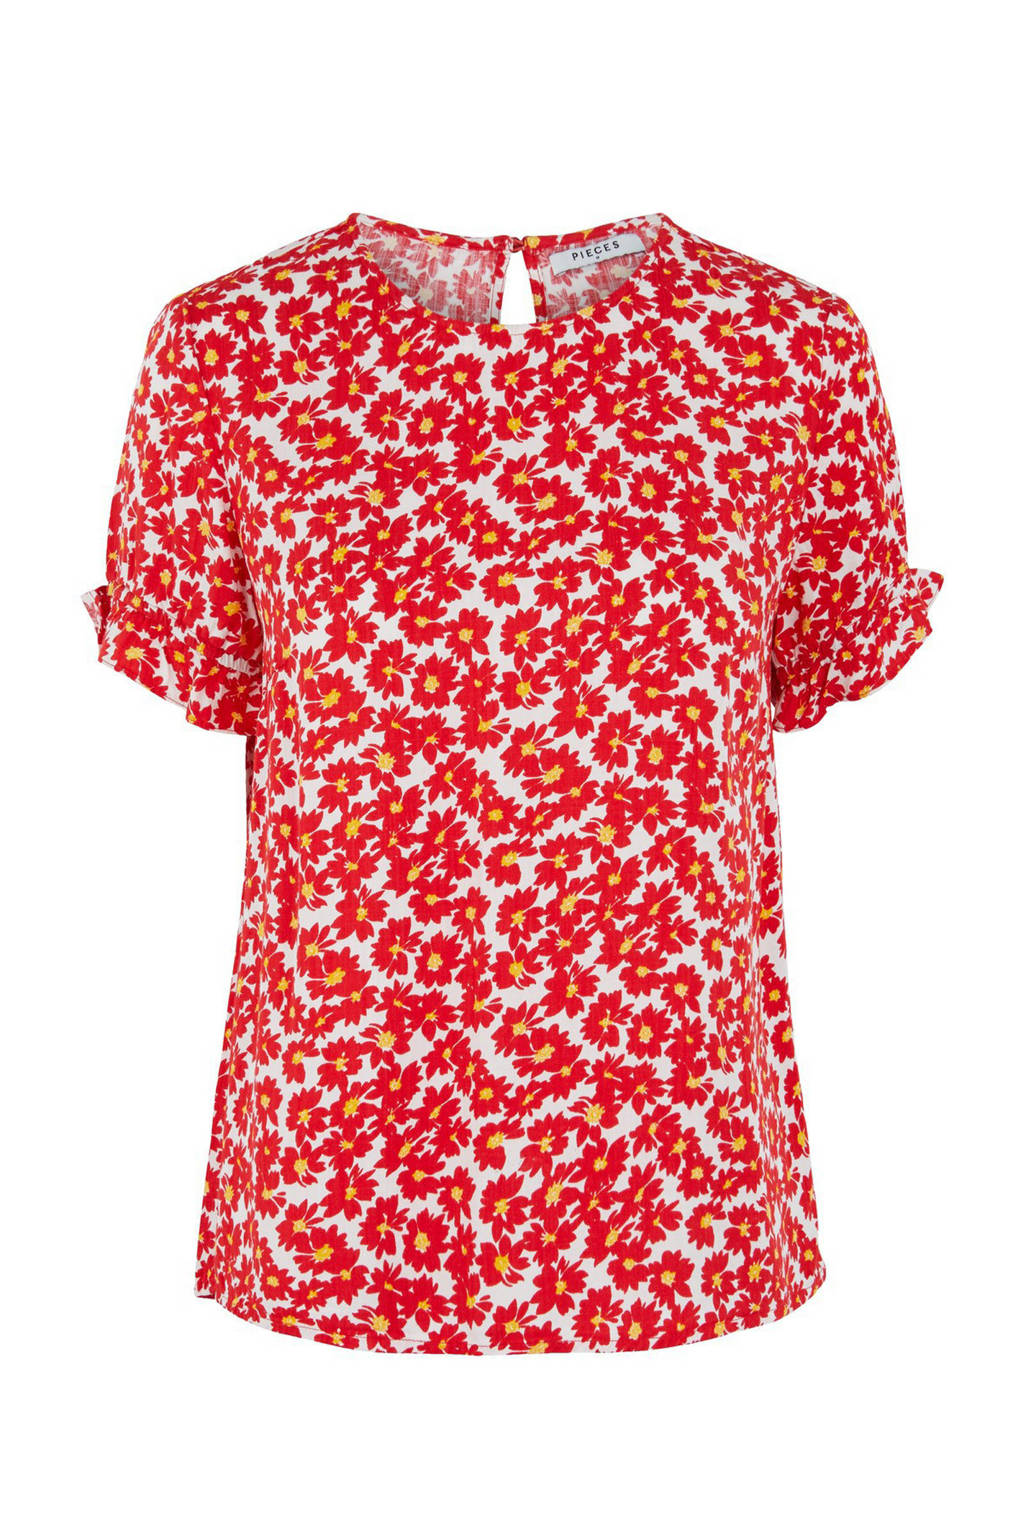 PIECES blouse met all over print rood, Rood